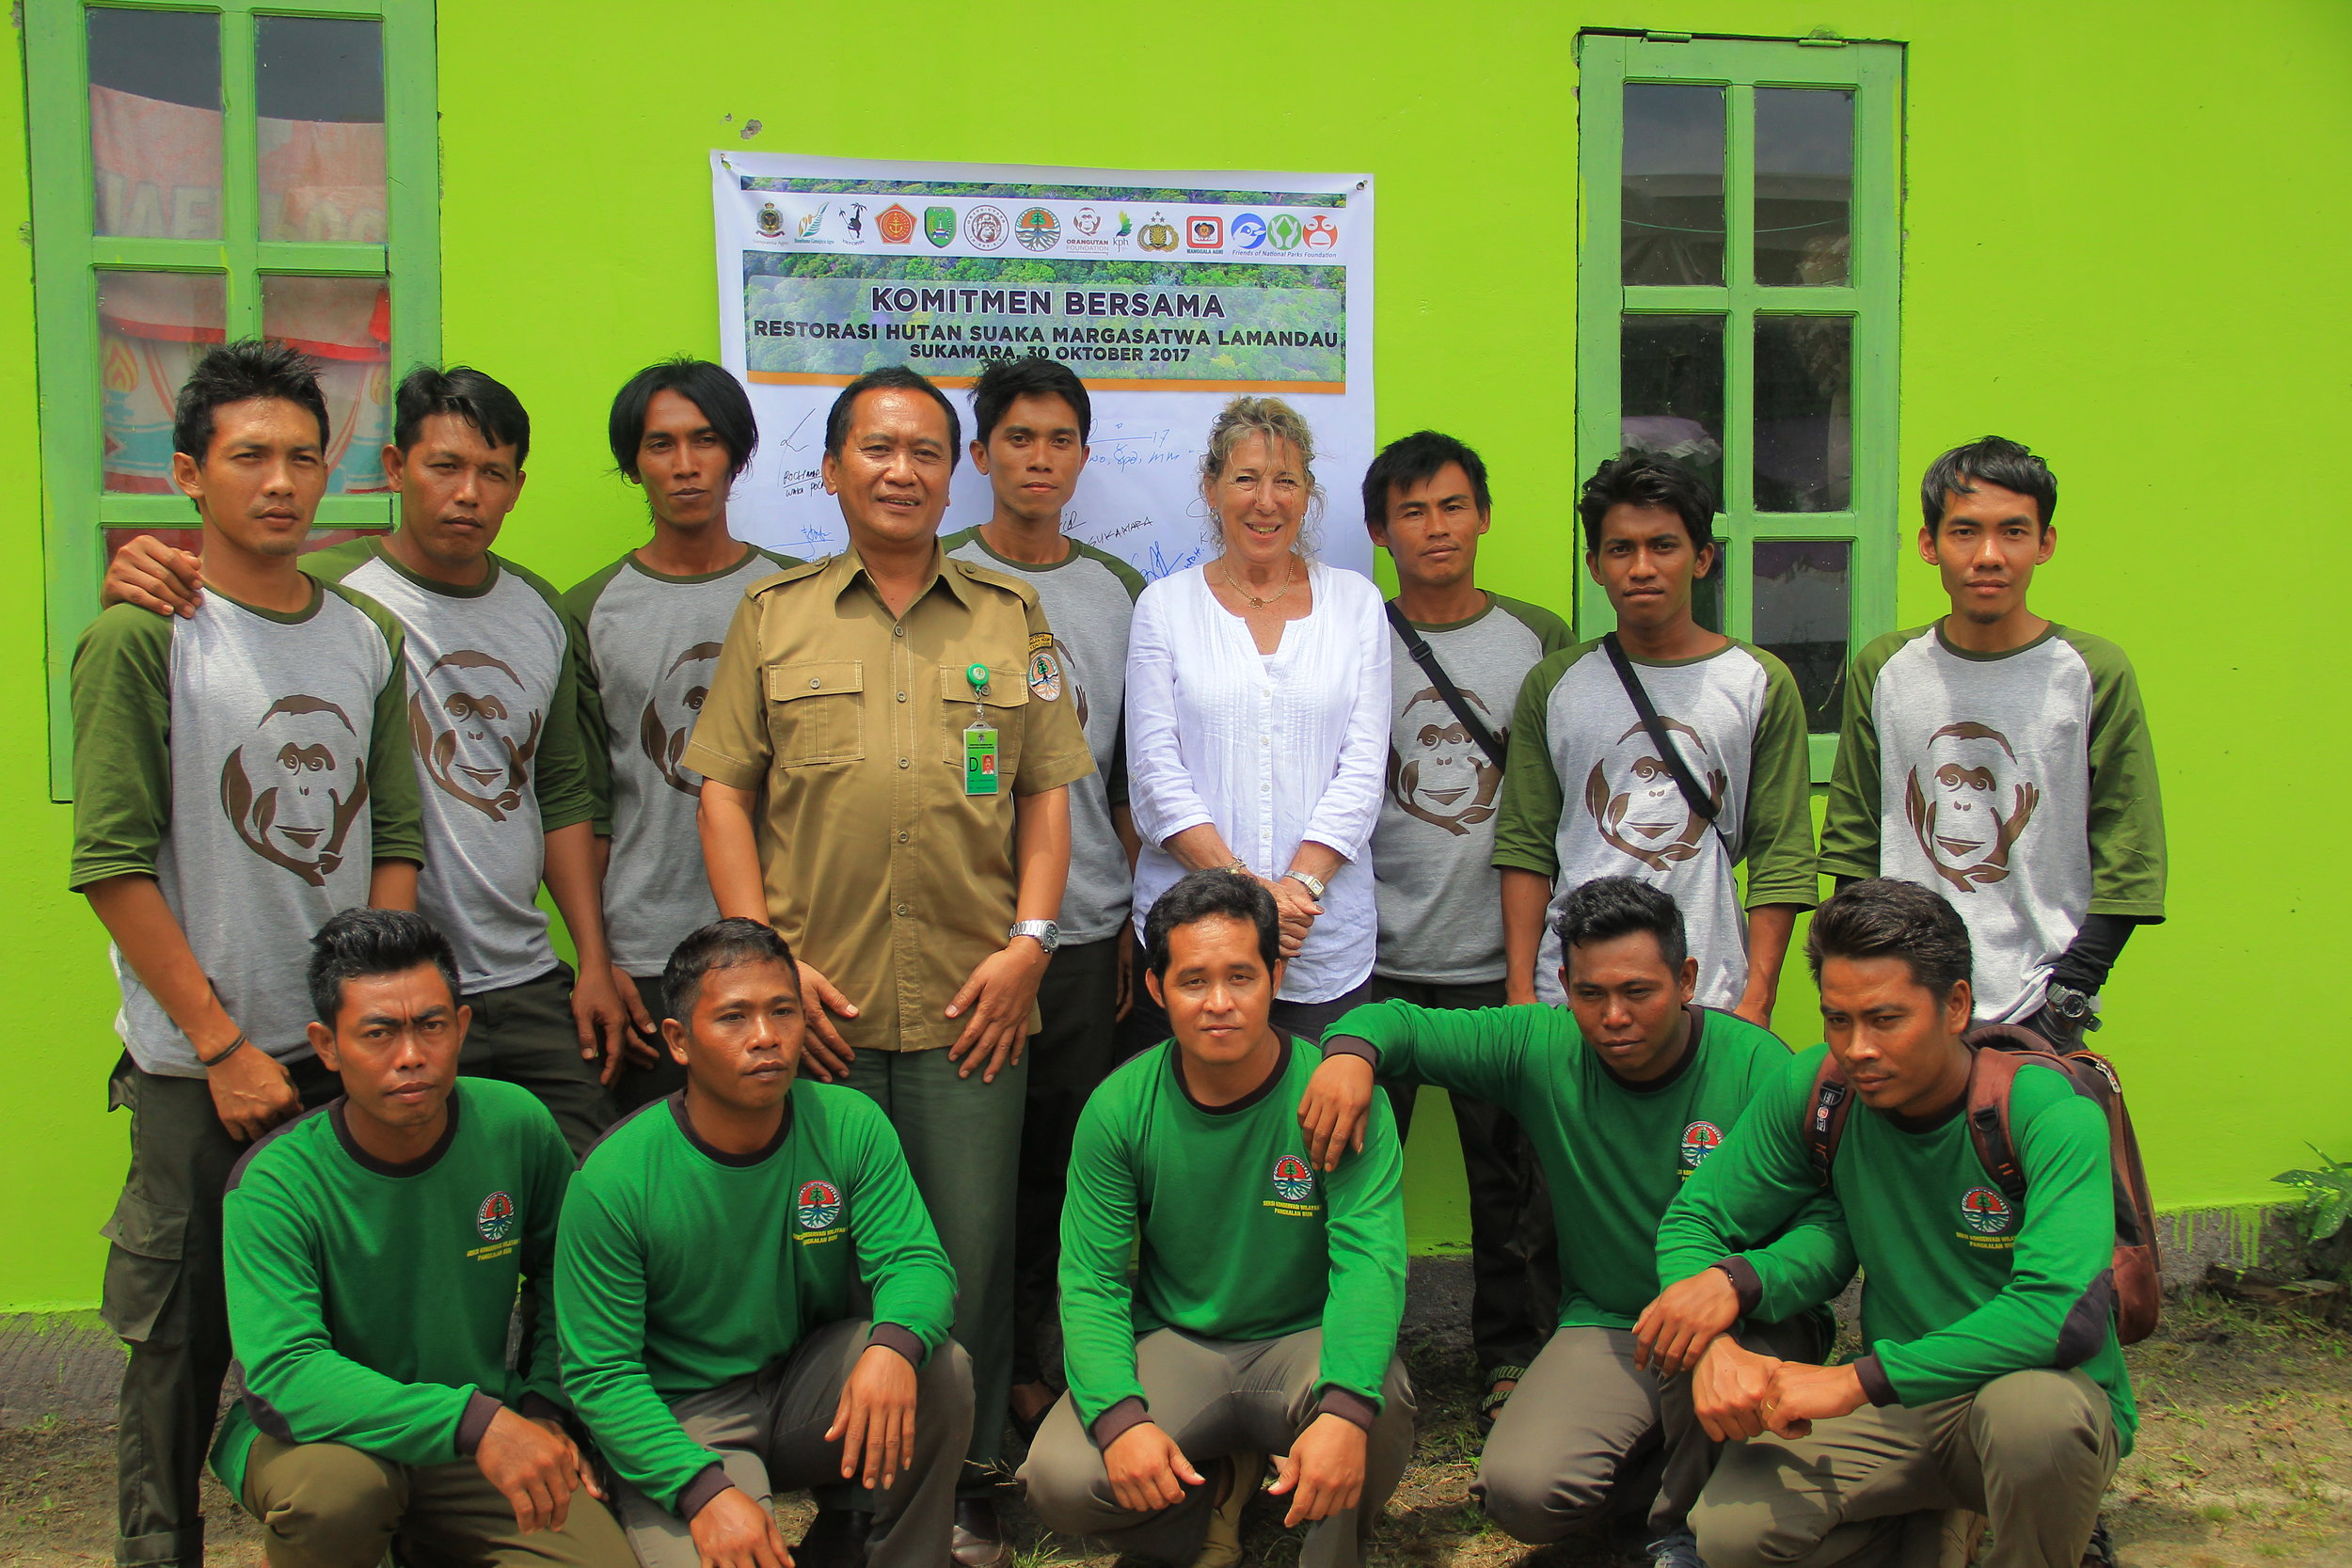 OF Director Ashley Leiman OBE together with BKSDA and Orangutan Foundation guard post staff. Image© Orangutan Foundation.